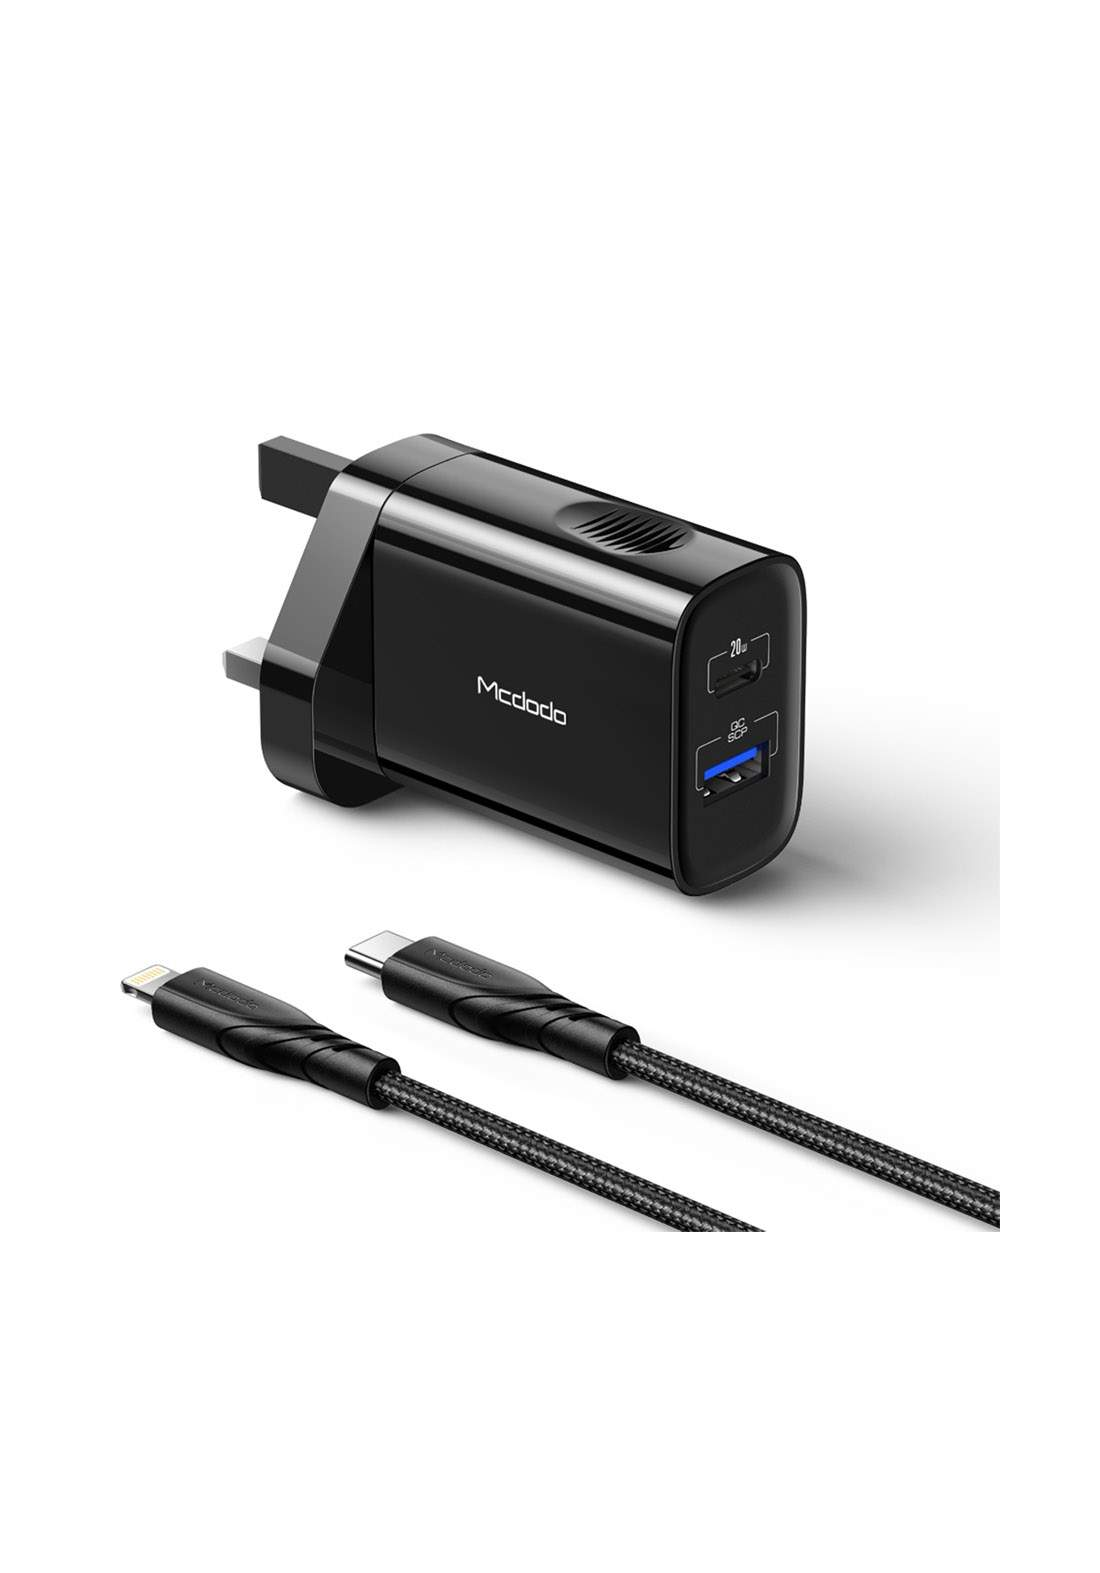 (4303)Mcdodo CH08402 Dual Port PD and QC  Wall Charger with Cable 20W - Black  شاحن